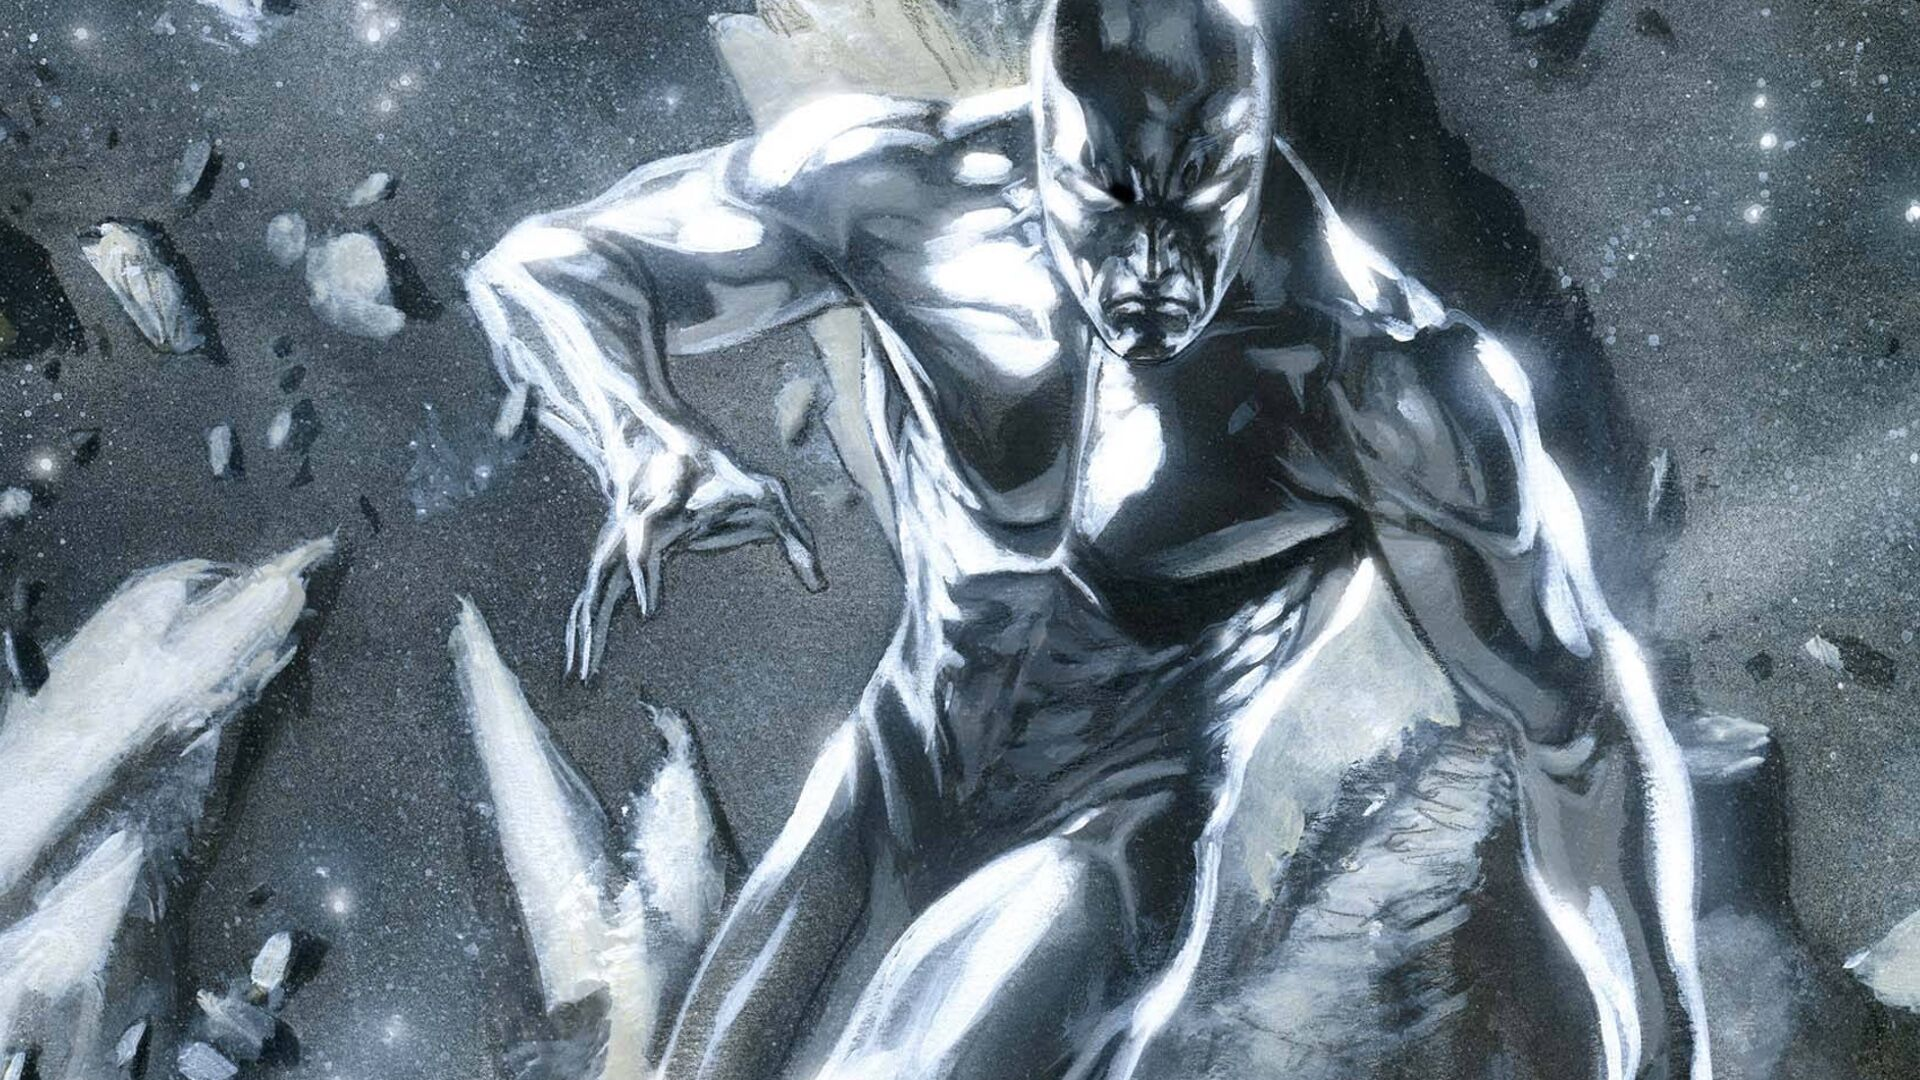 Silver Surfer film reportedly in the works at Marvel Studios